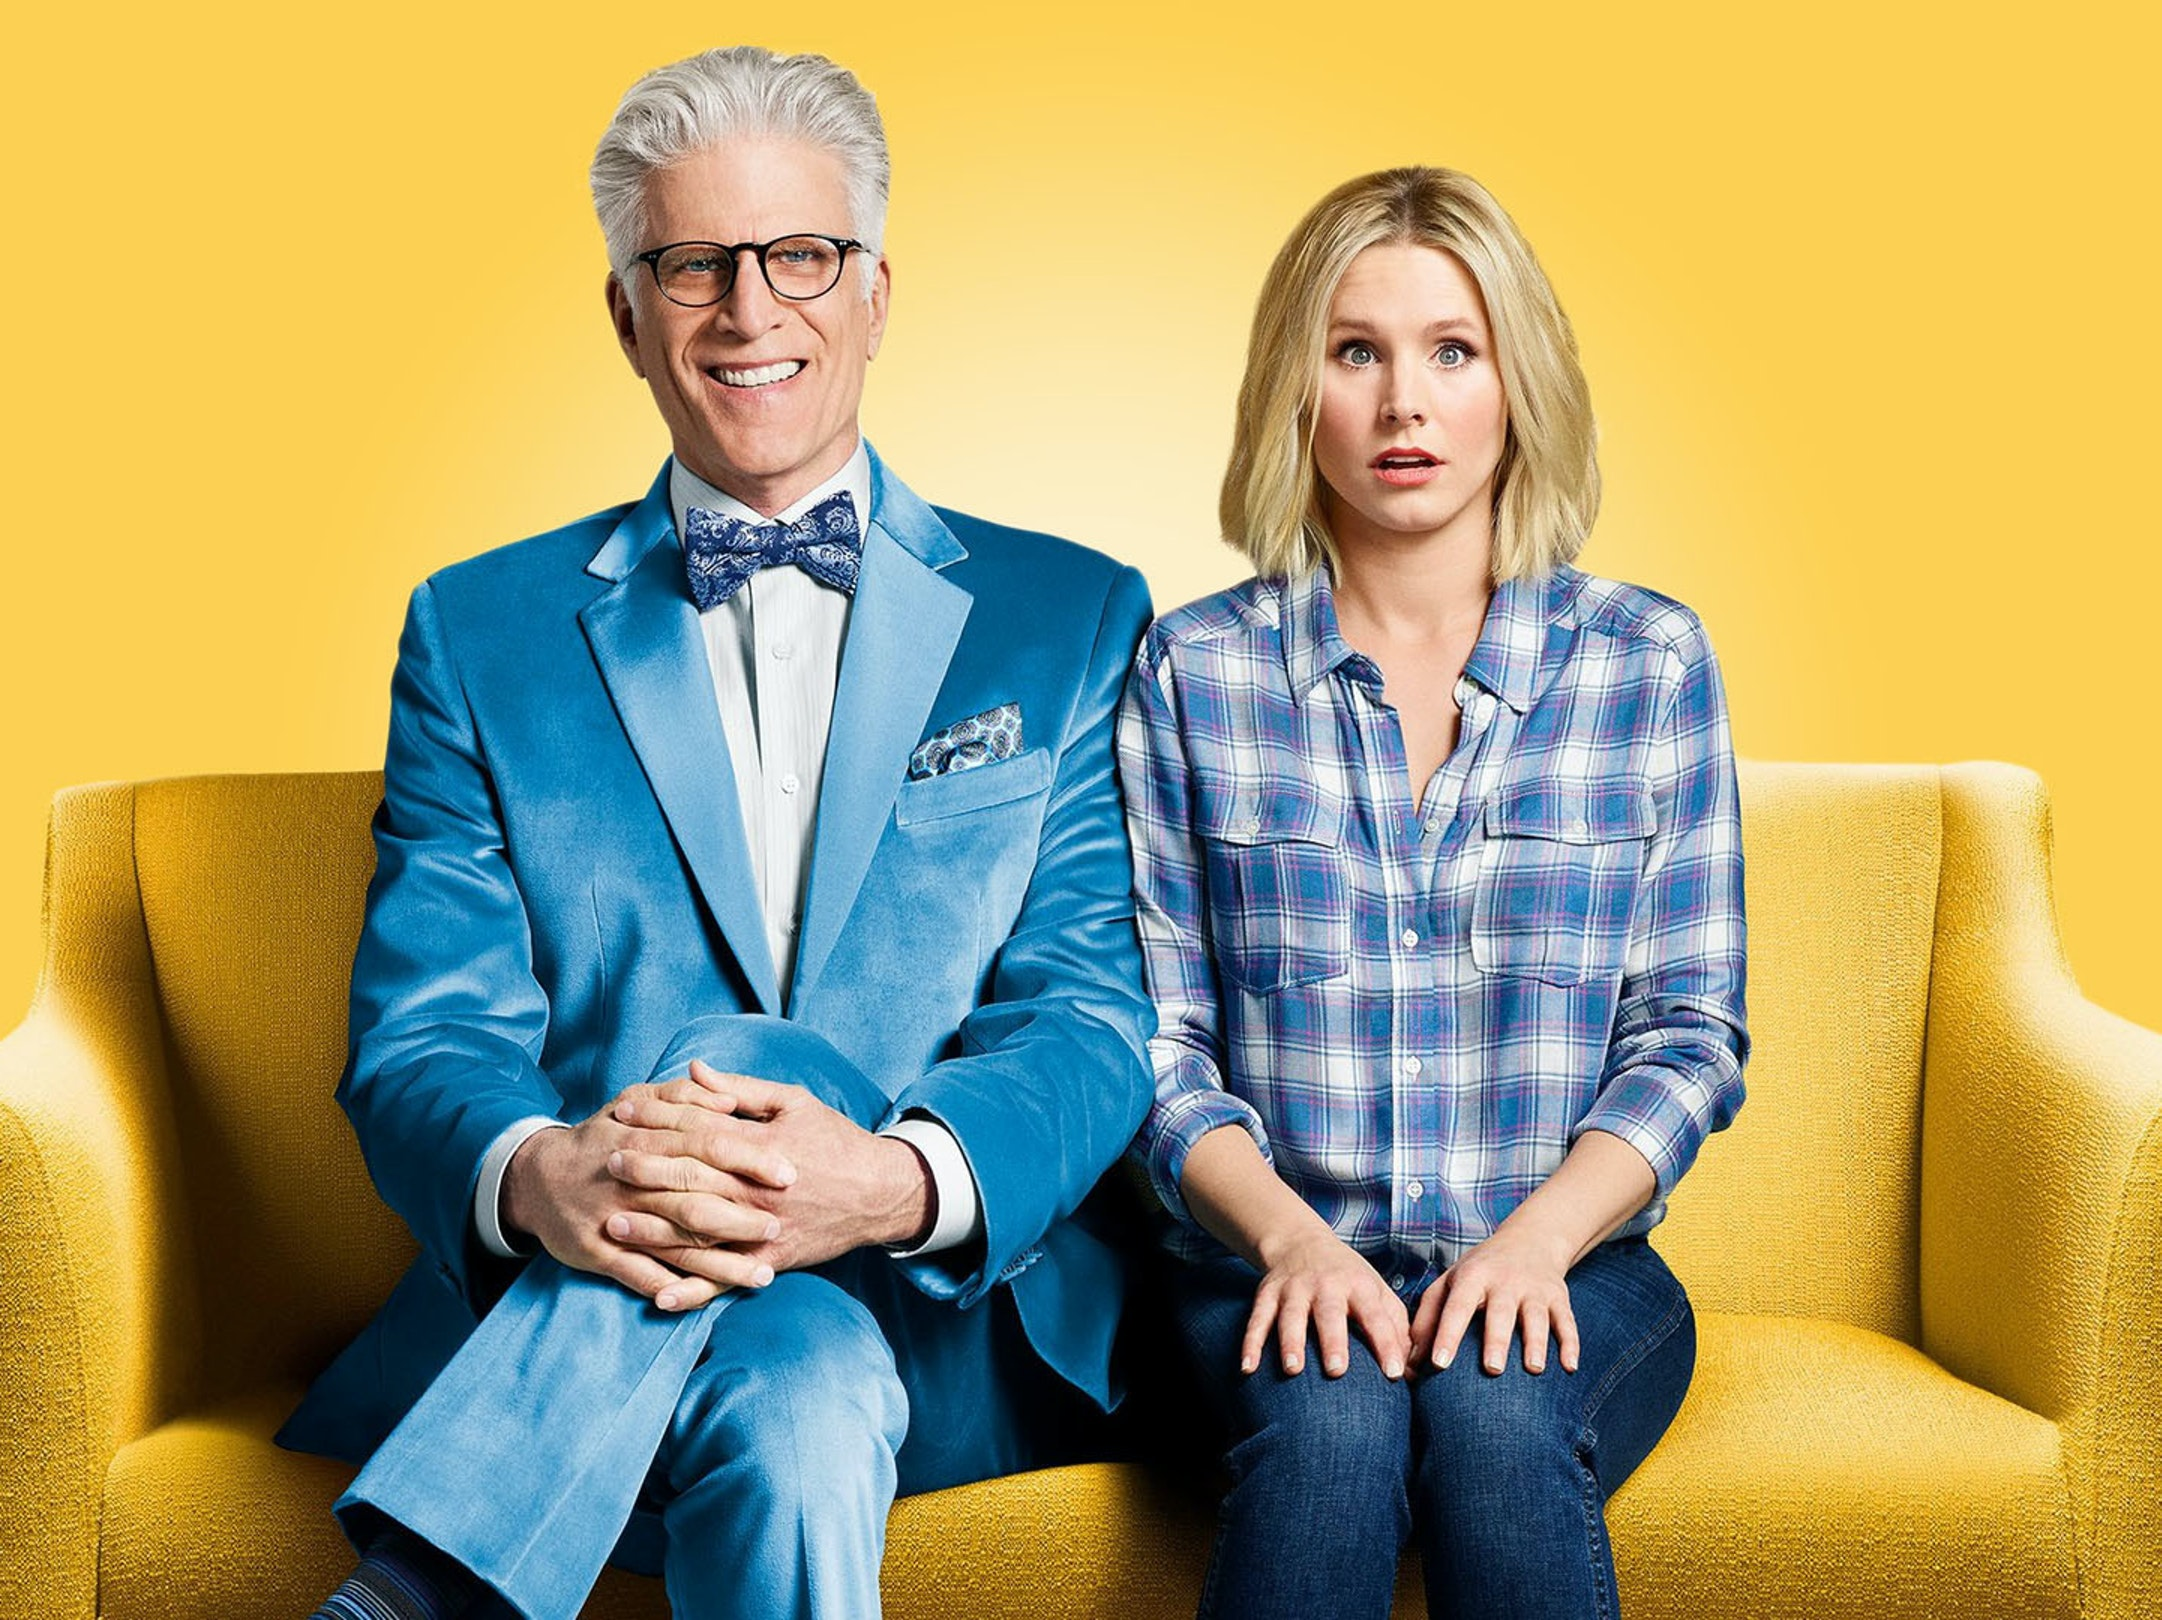 'The Good Place' Is the Season's Most Terrifying Sci-Fi Show